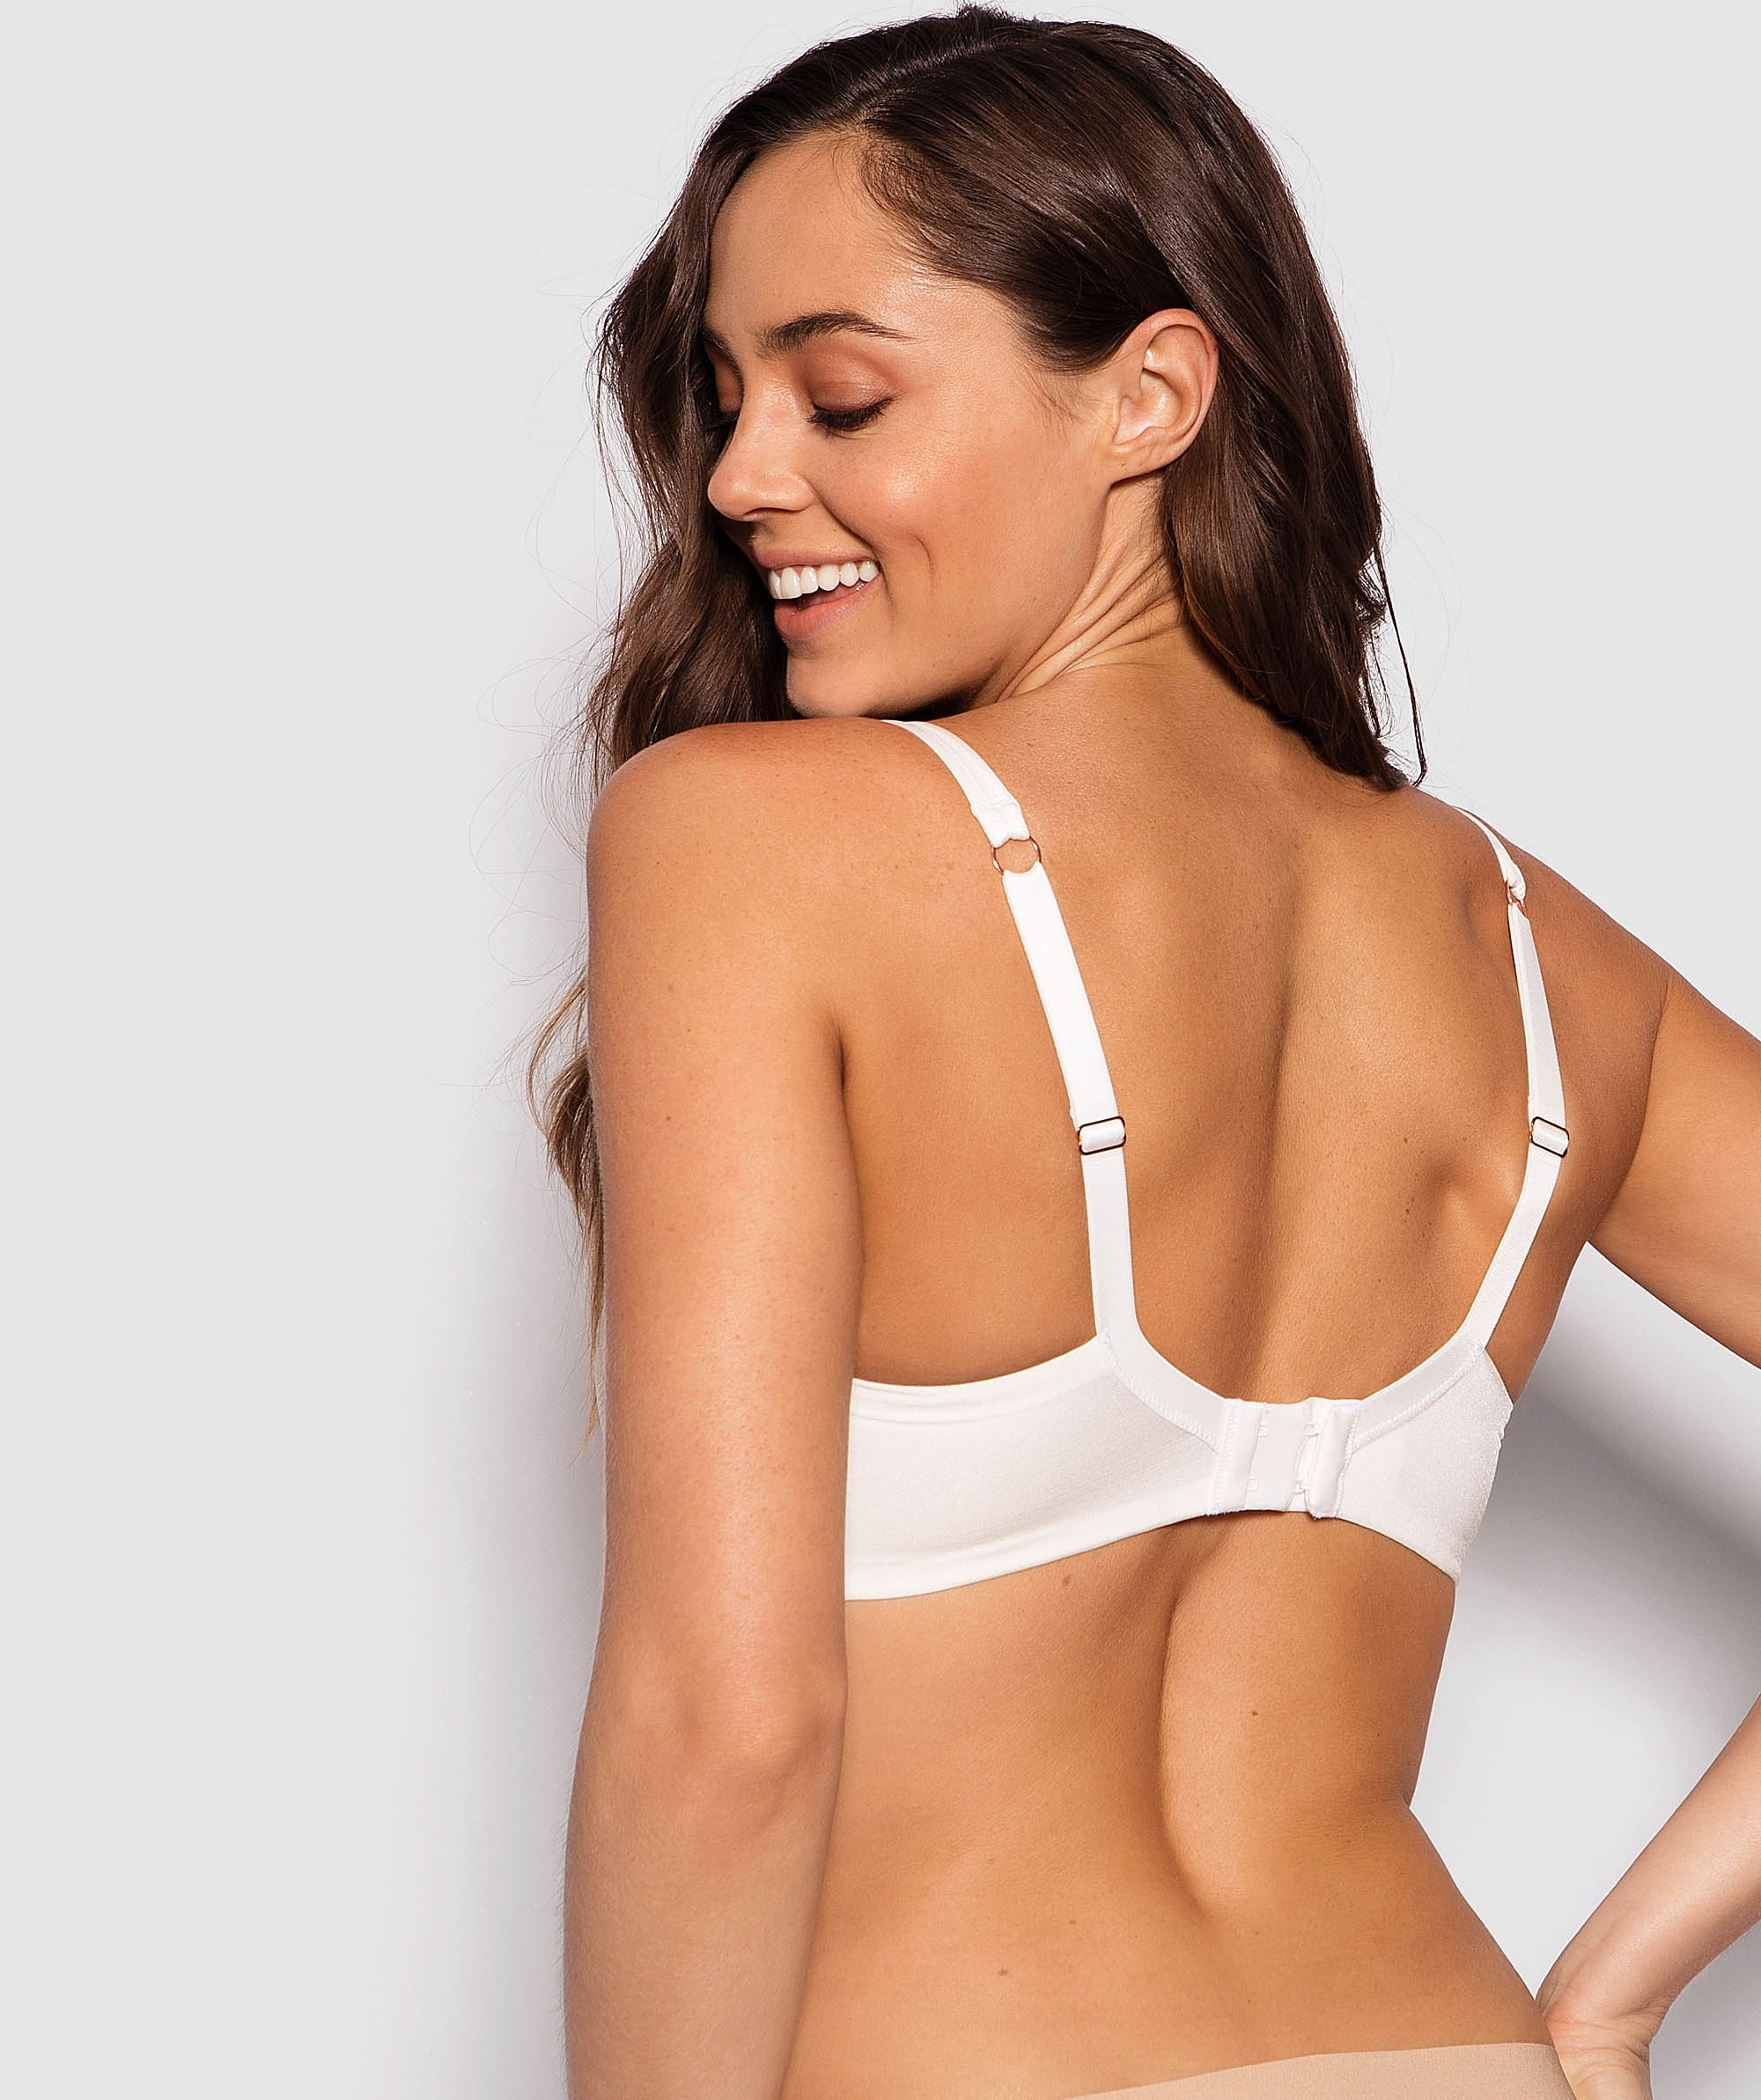 Pure Body Lace Full Cup Bra - Ivory